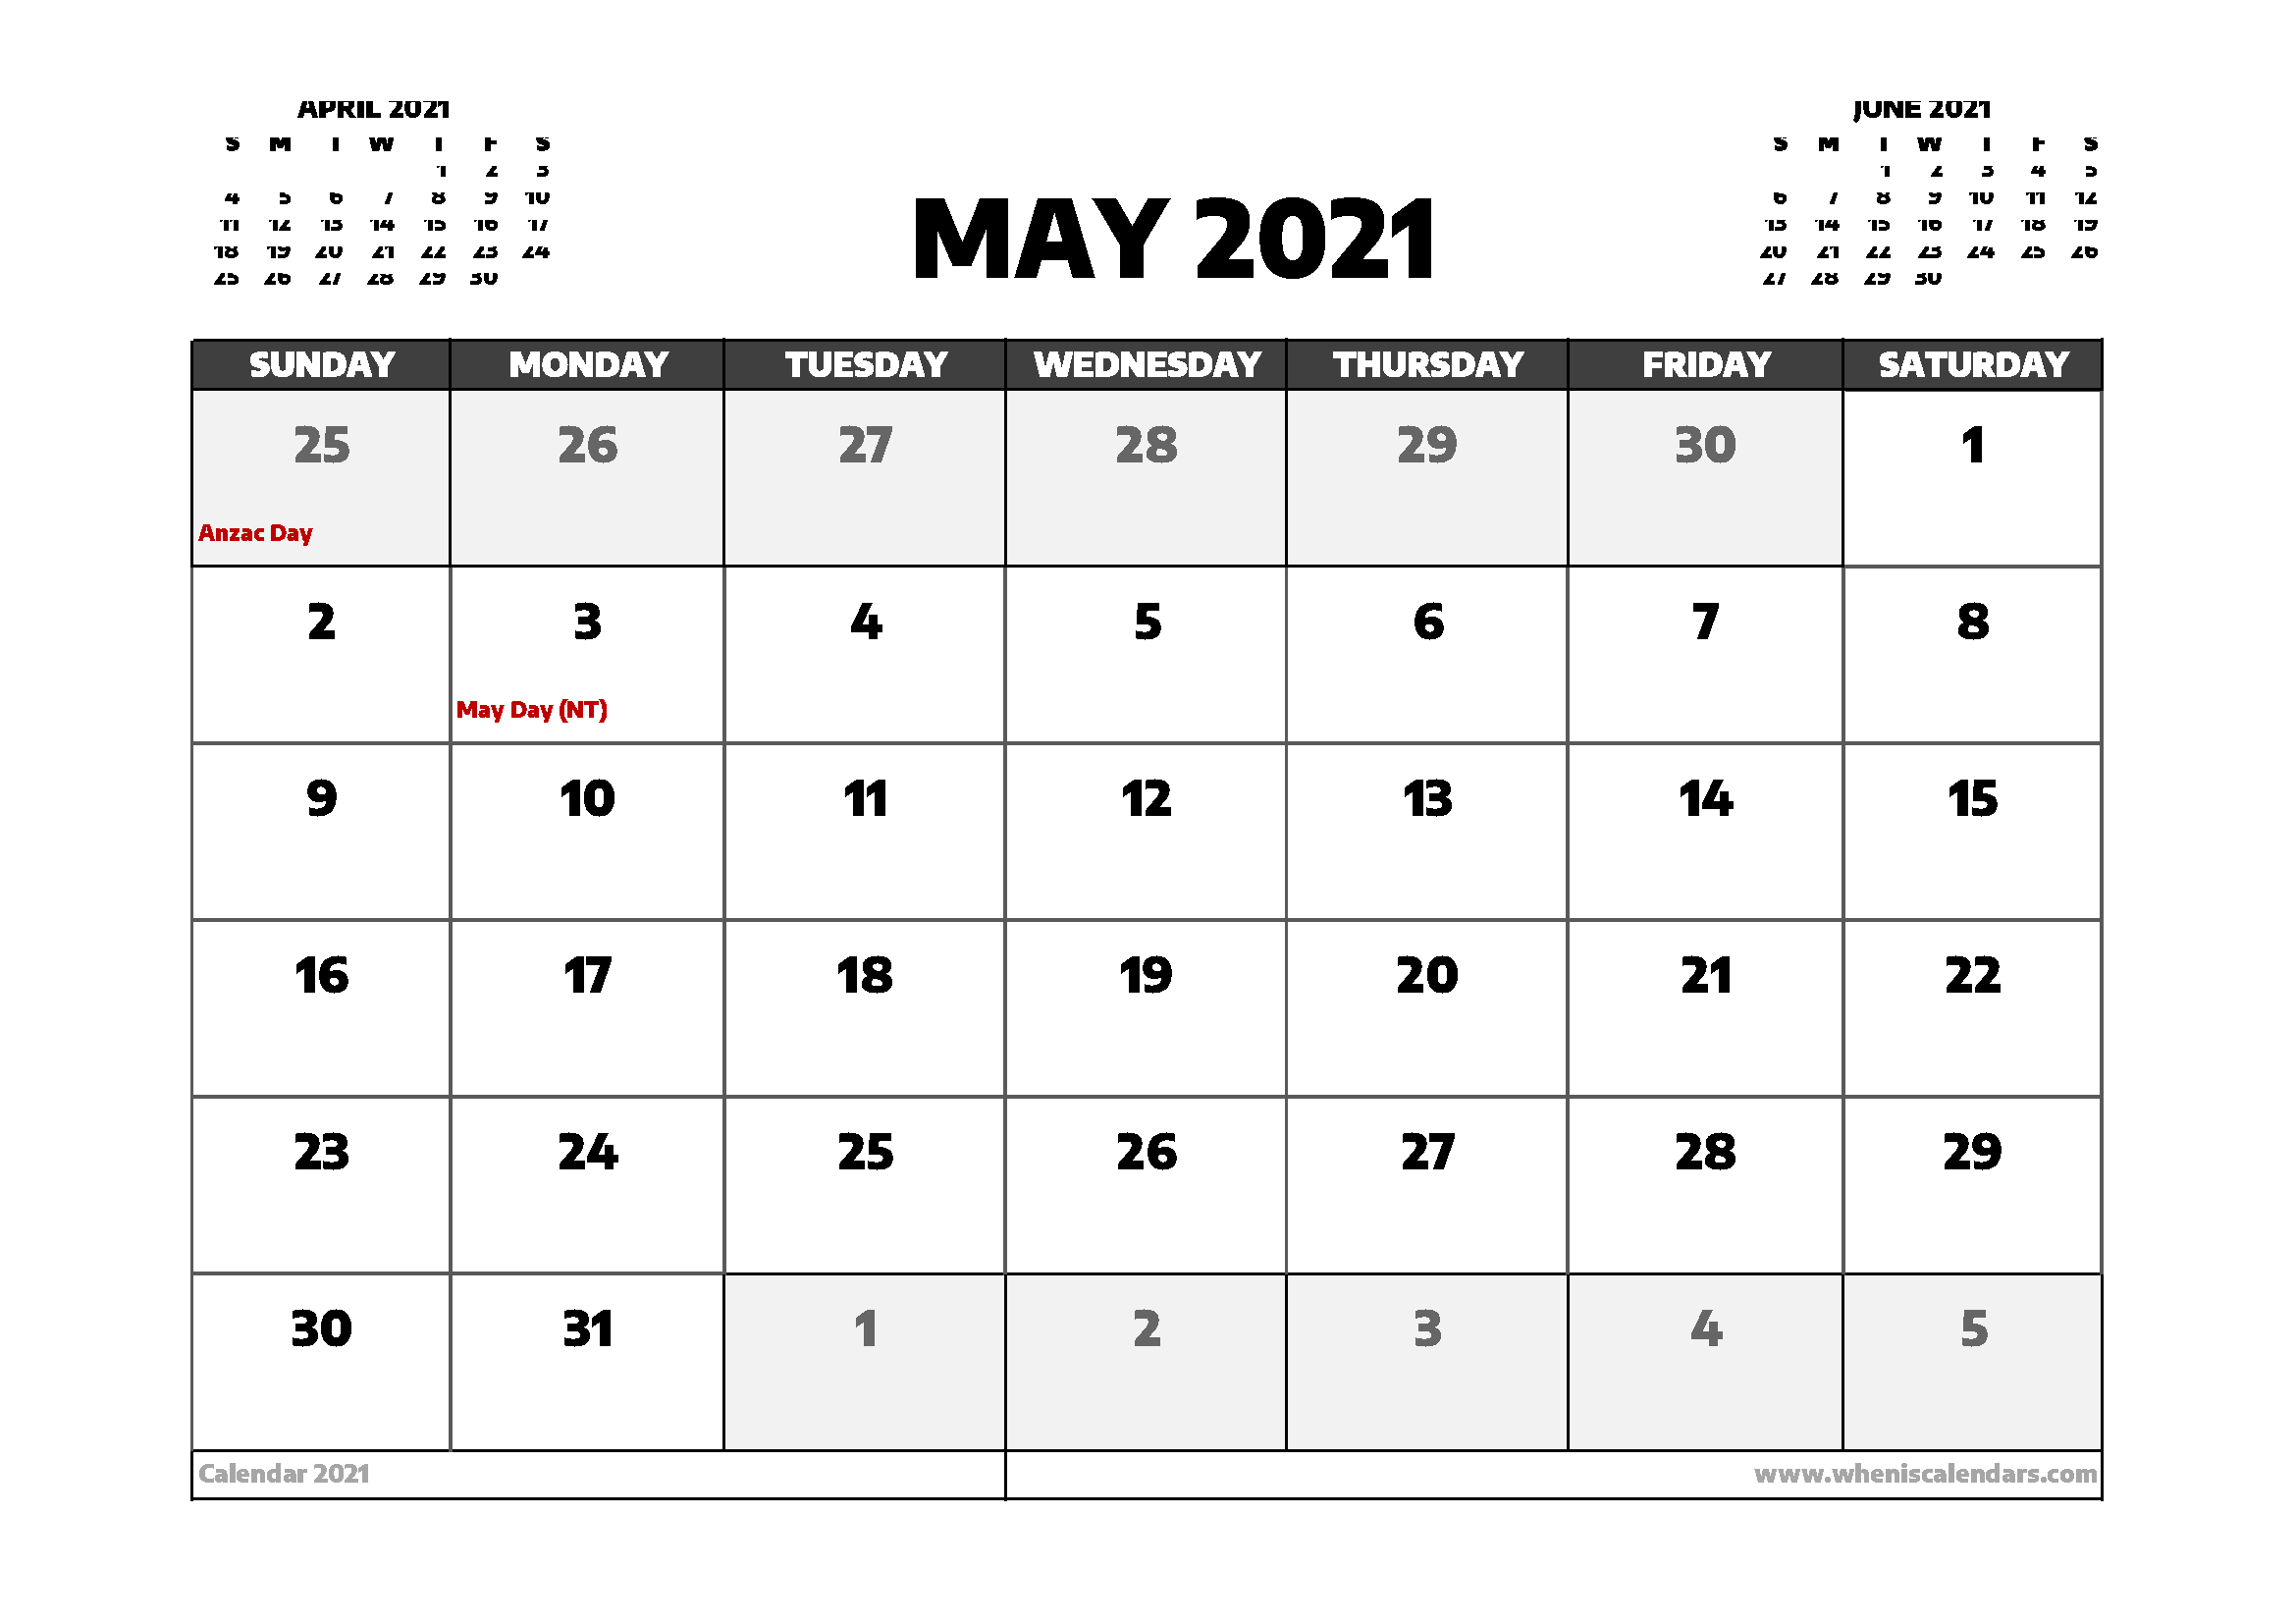 May 2021 Calendar Australia with Holidays